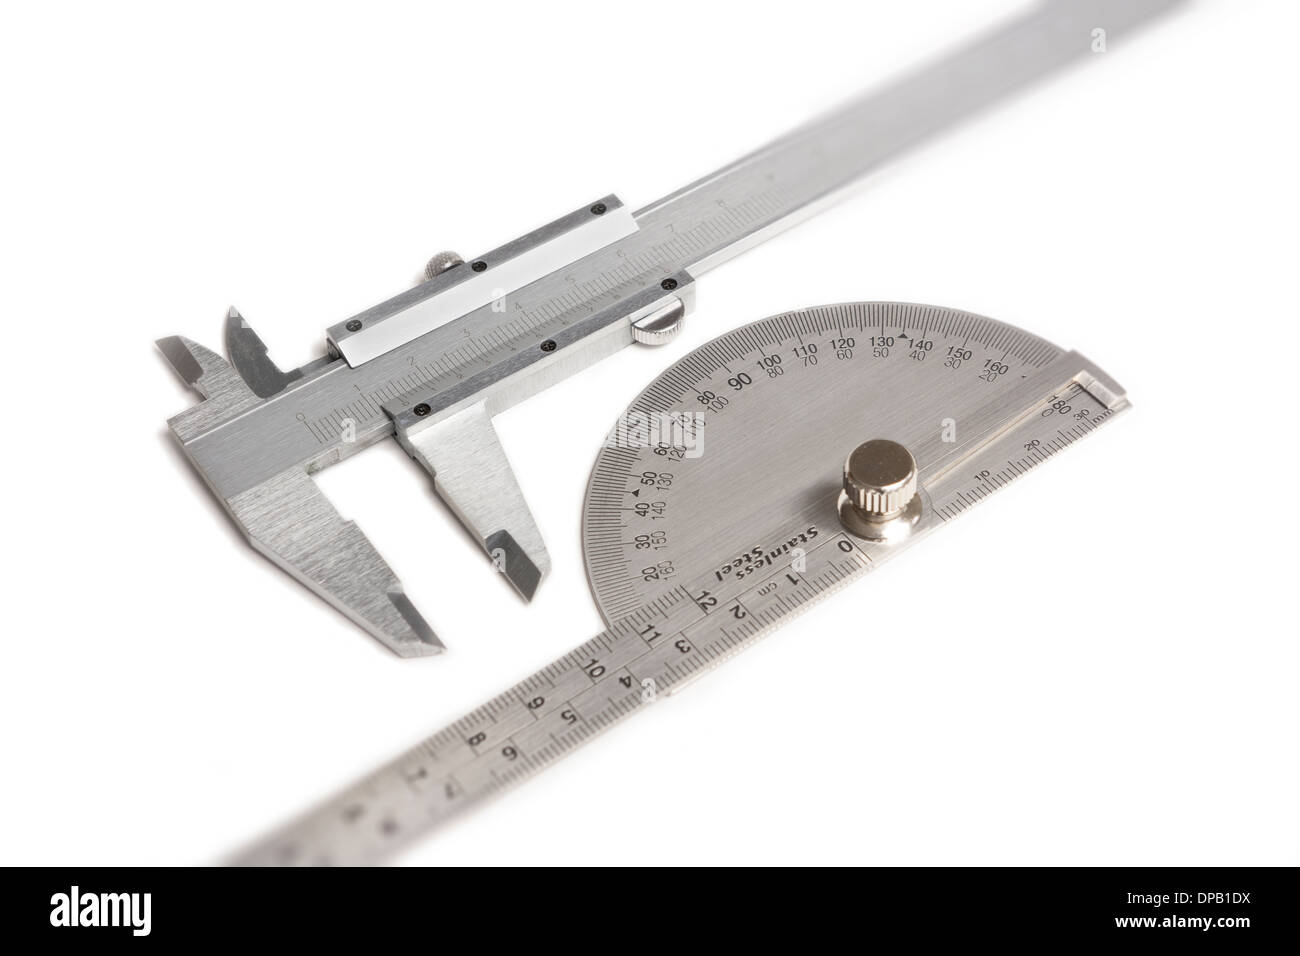 Vernier caliper and protractor isolated on white - Stock Image